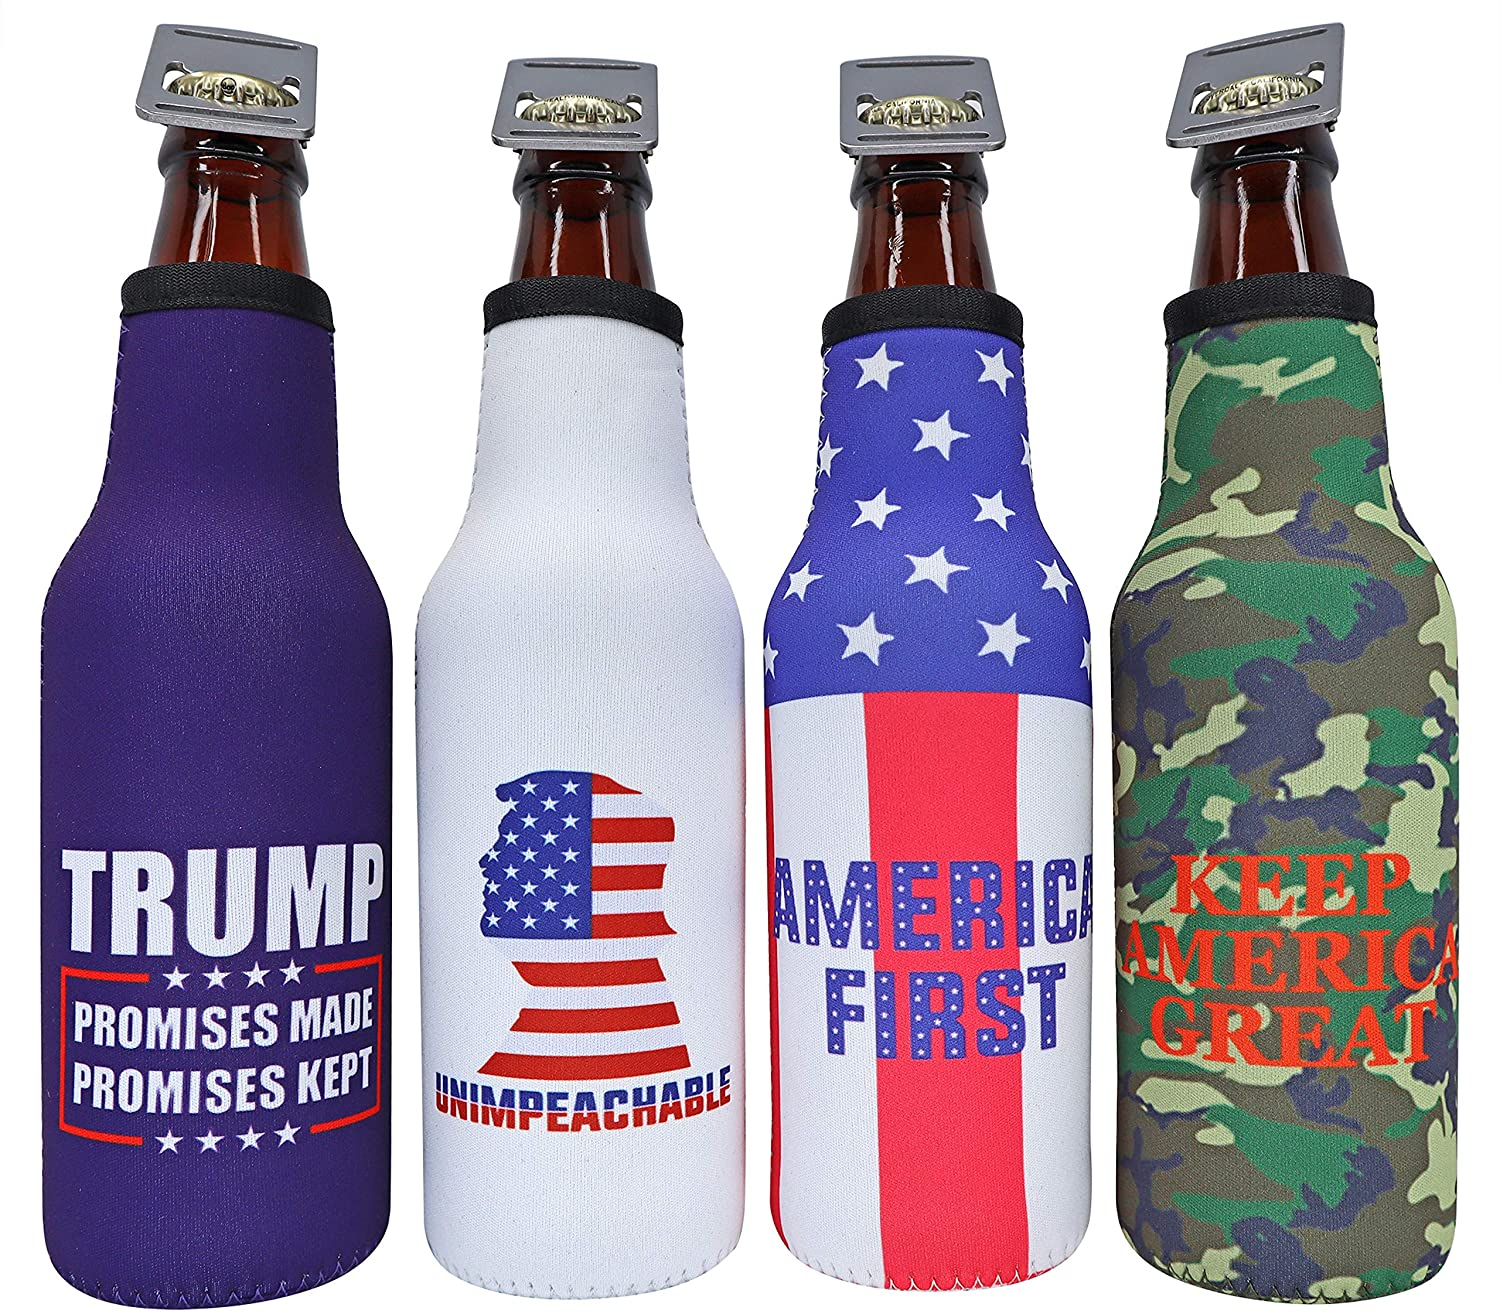 America First Beer Bottle Insulator - Donald Trump 2020 Promises Made Promises Kept, Keep America Great, Unimpeachable, MAGA Insulated Cooler Sleeve with Zipper and Built-In Removable Bottle Opener